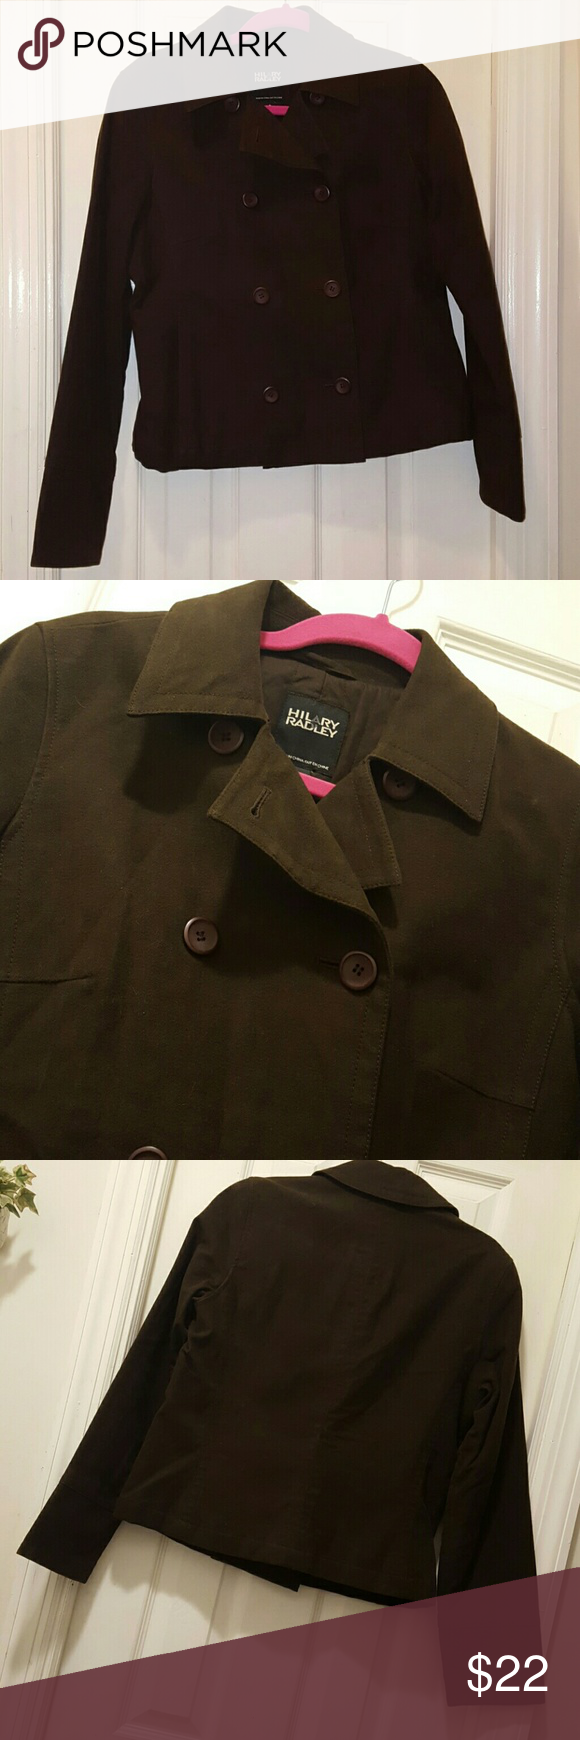 Hilary Radley blazer jacket Suede like feel. Very good condition. Quilted cotton lining. Hilary Radley Jackets & Coats